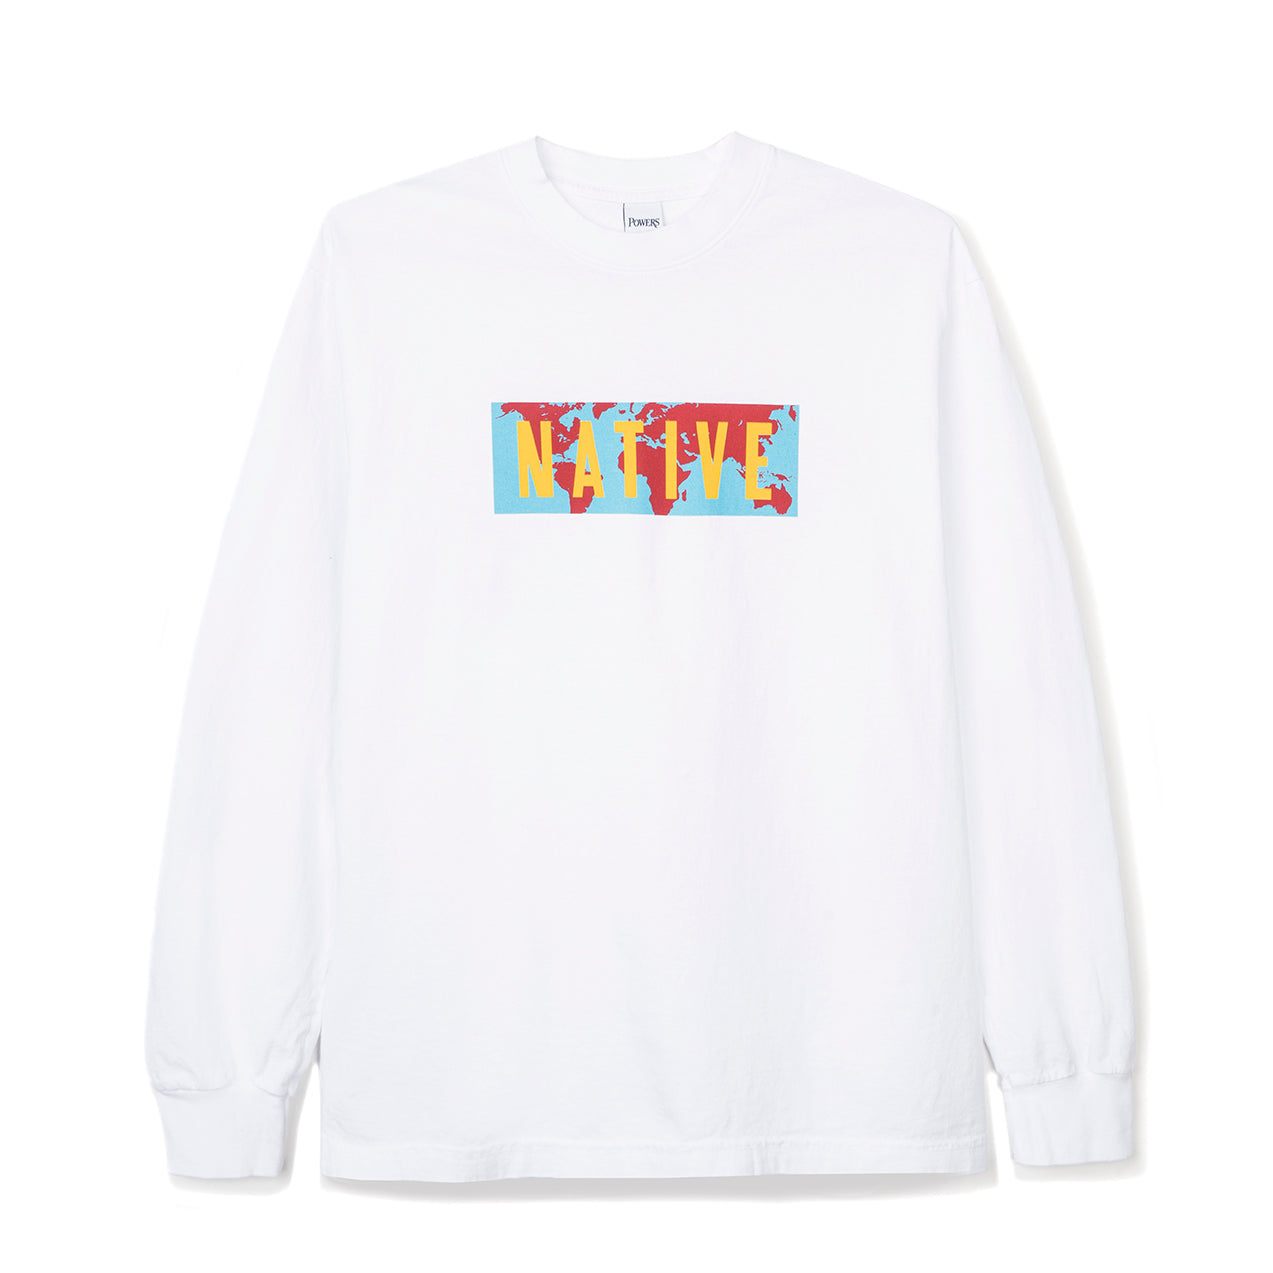 WORLD NATIVE LS TEE